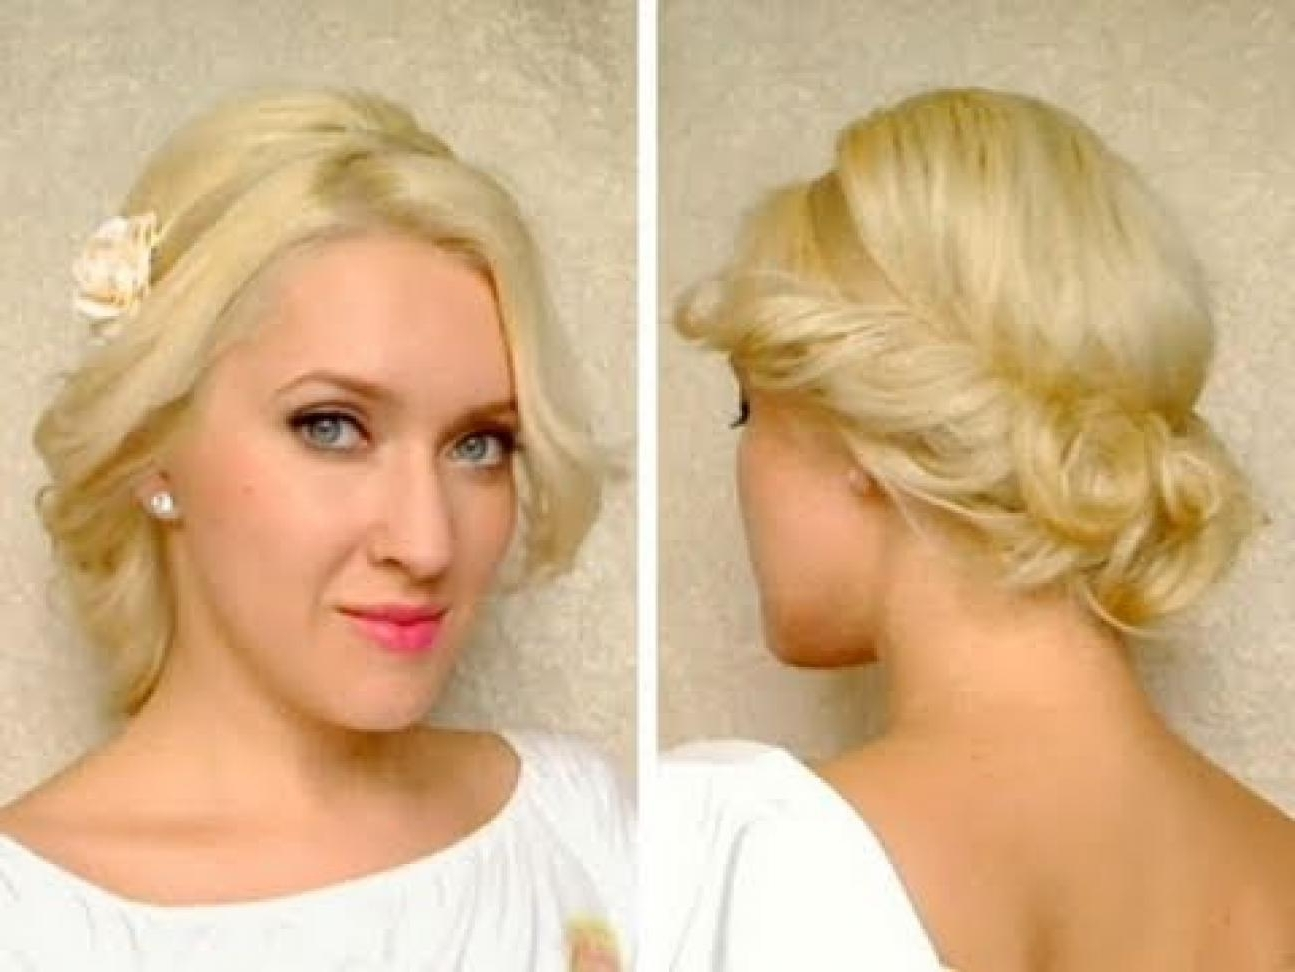 Cute Updo Hairstyles For Medium Length Hair – Hairstyle For Women & Man Pertaining To Easy Updo Hairstyles For Shoulder Length Hair (View 3 of 15)